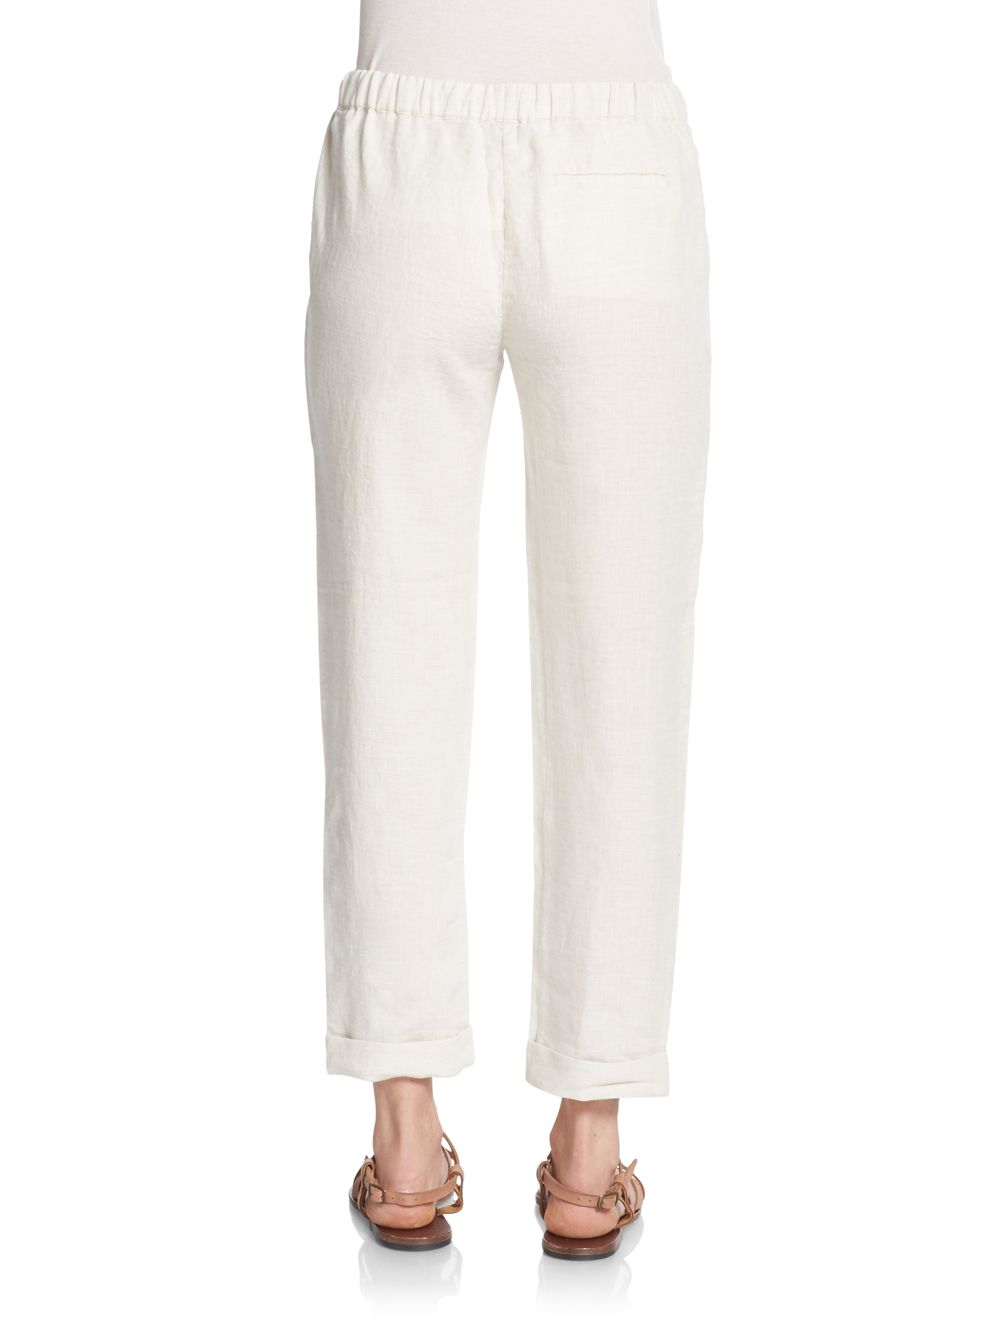 Flax Linen Drawstring Pants - Pant Row